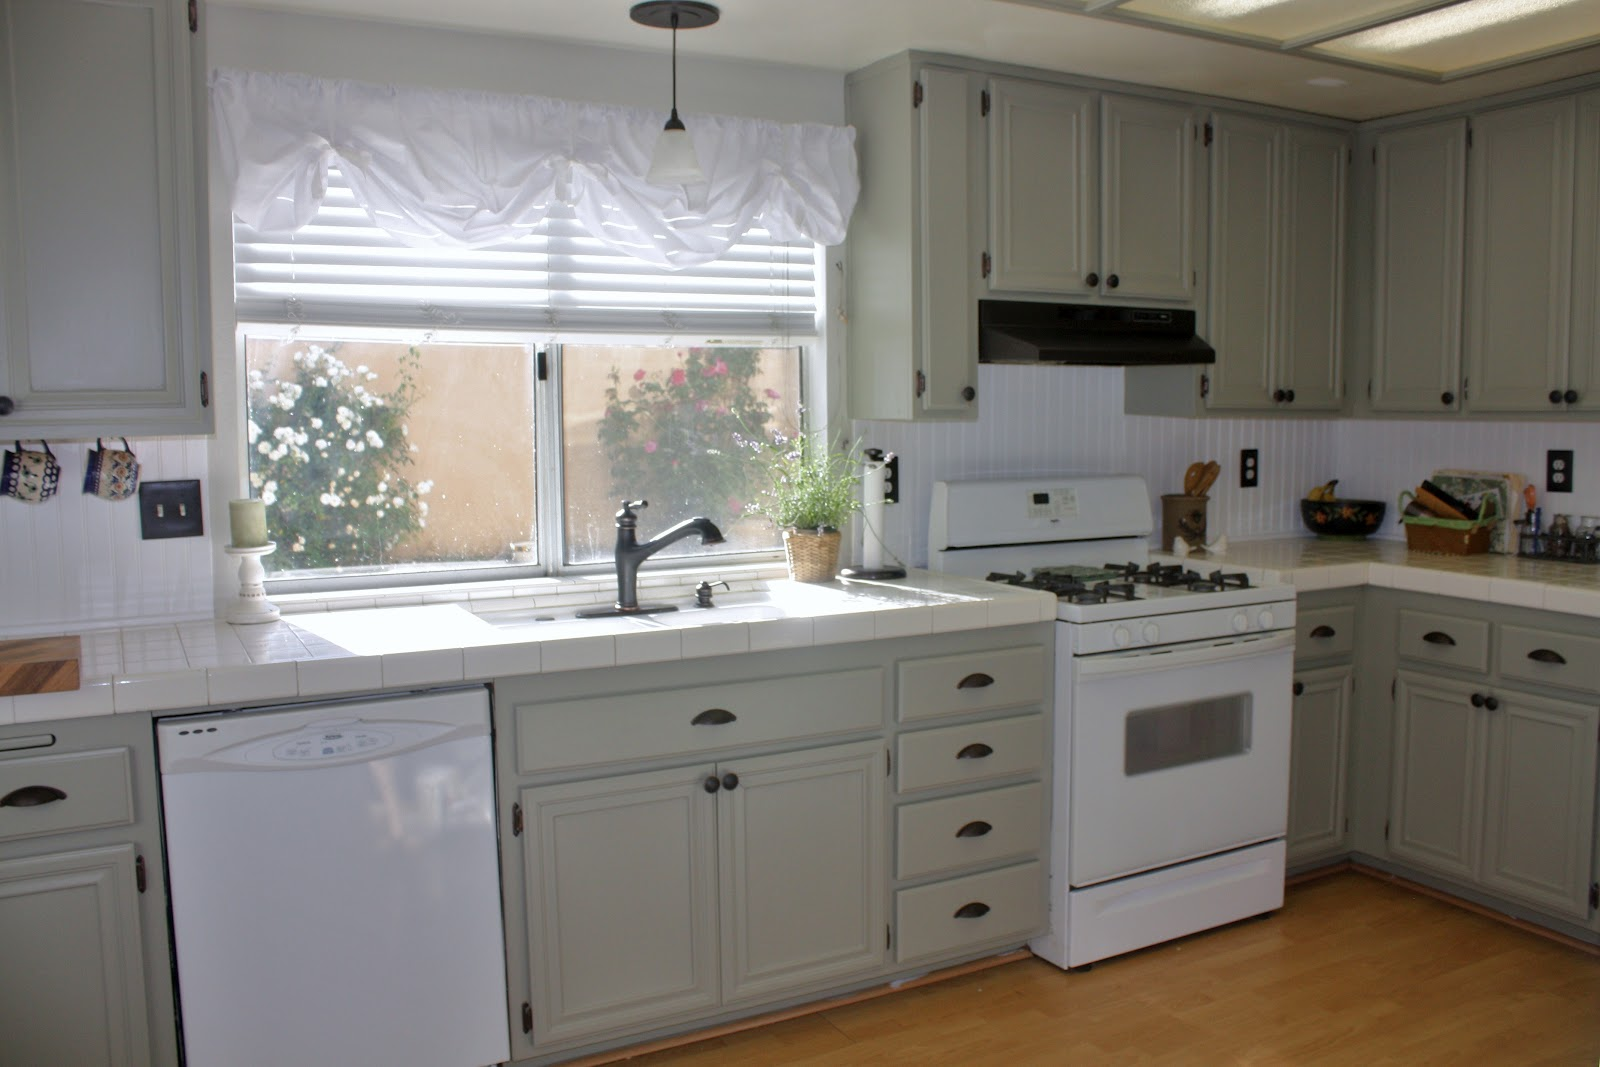 my new kitchen martha stewart kitchen cabinets It doesn t even feel like my kitchen I feel like I am on vacation in someone else s house It s so pretty and makes the feel of the open concept part of